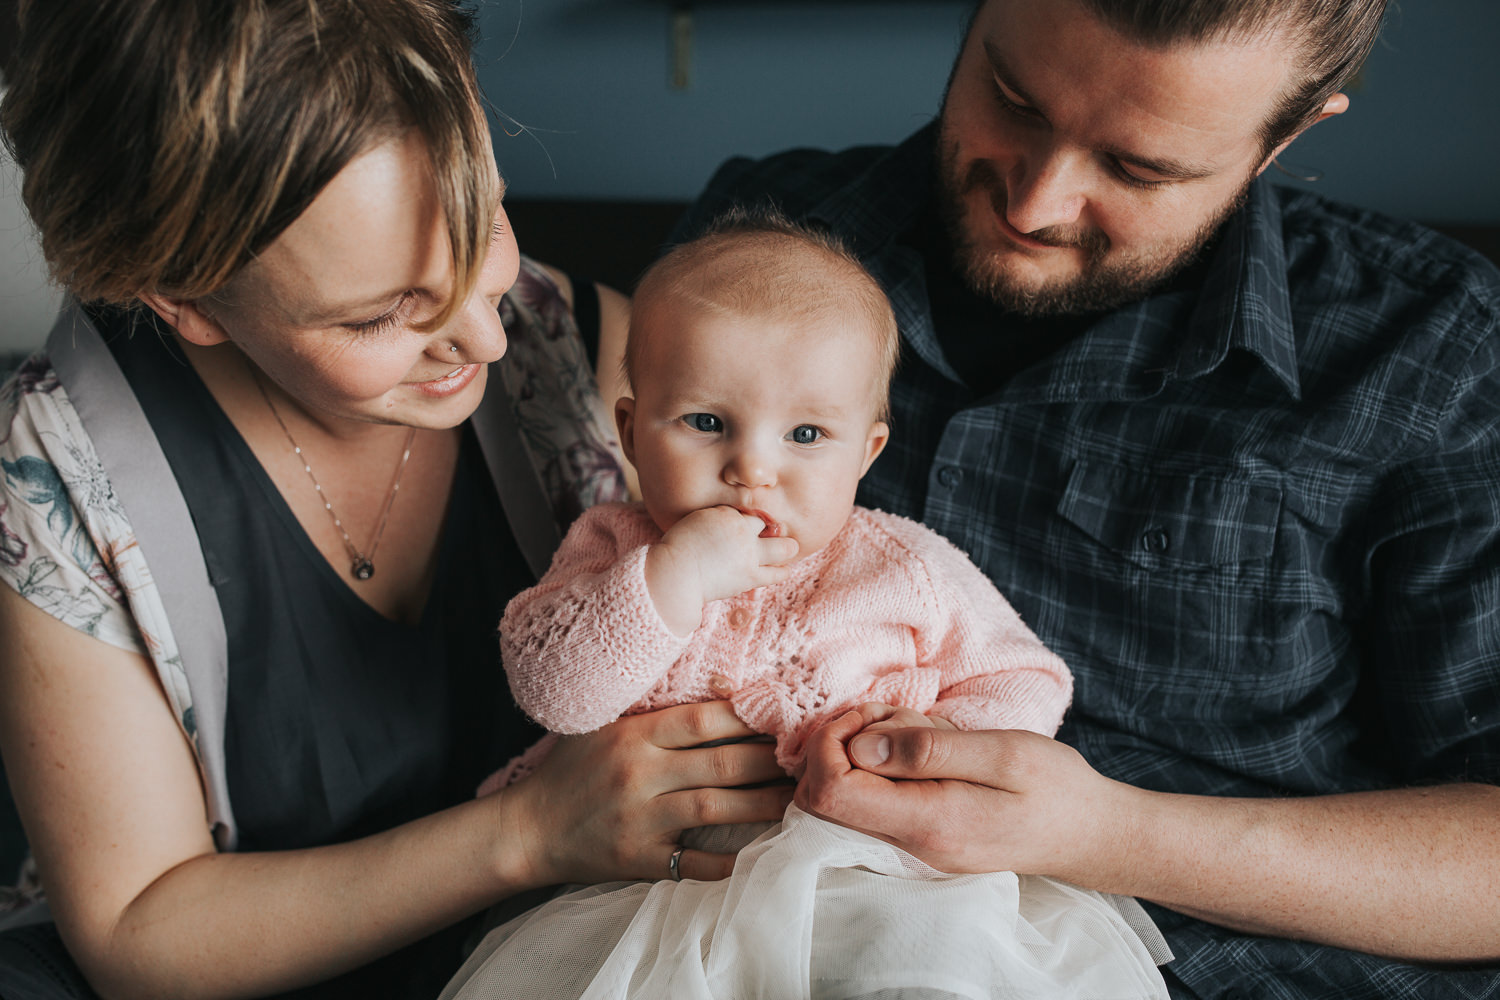 mother and father holding and looking at 5 month old baby girl in pink sweater and tutu who is chewing on her hand - Barrie lifestyle photos